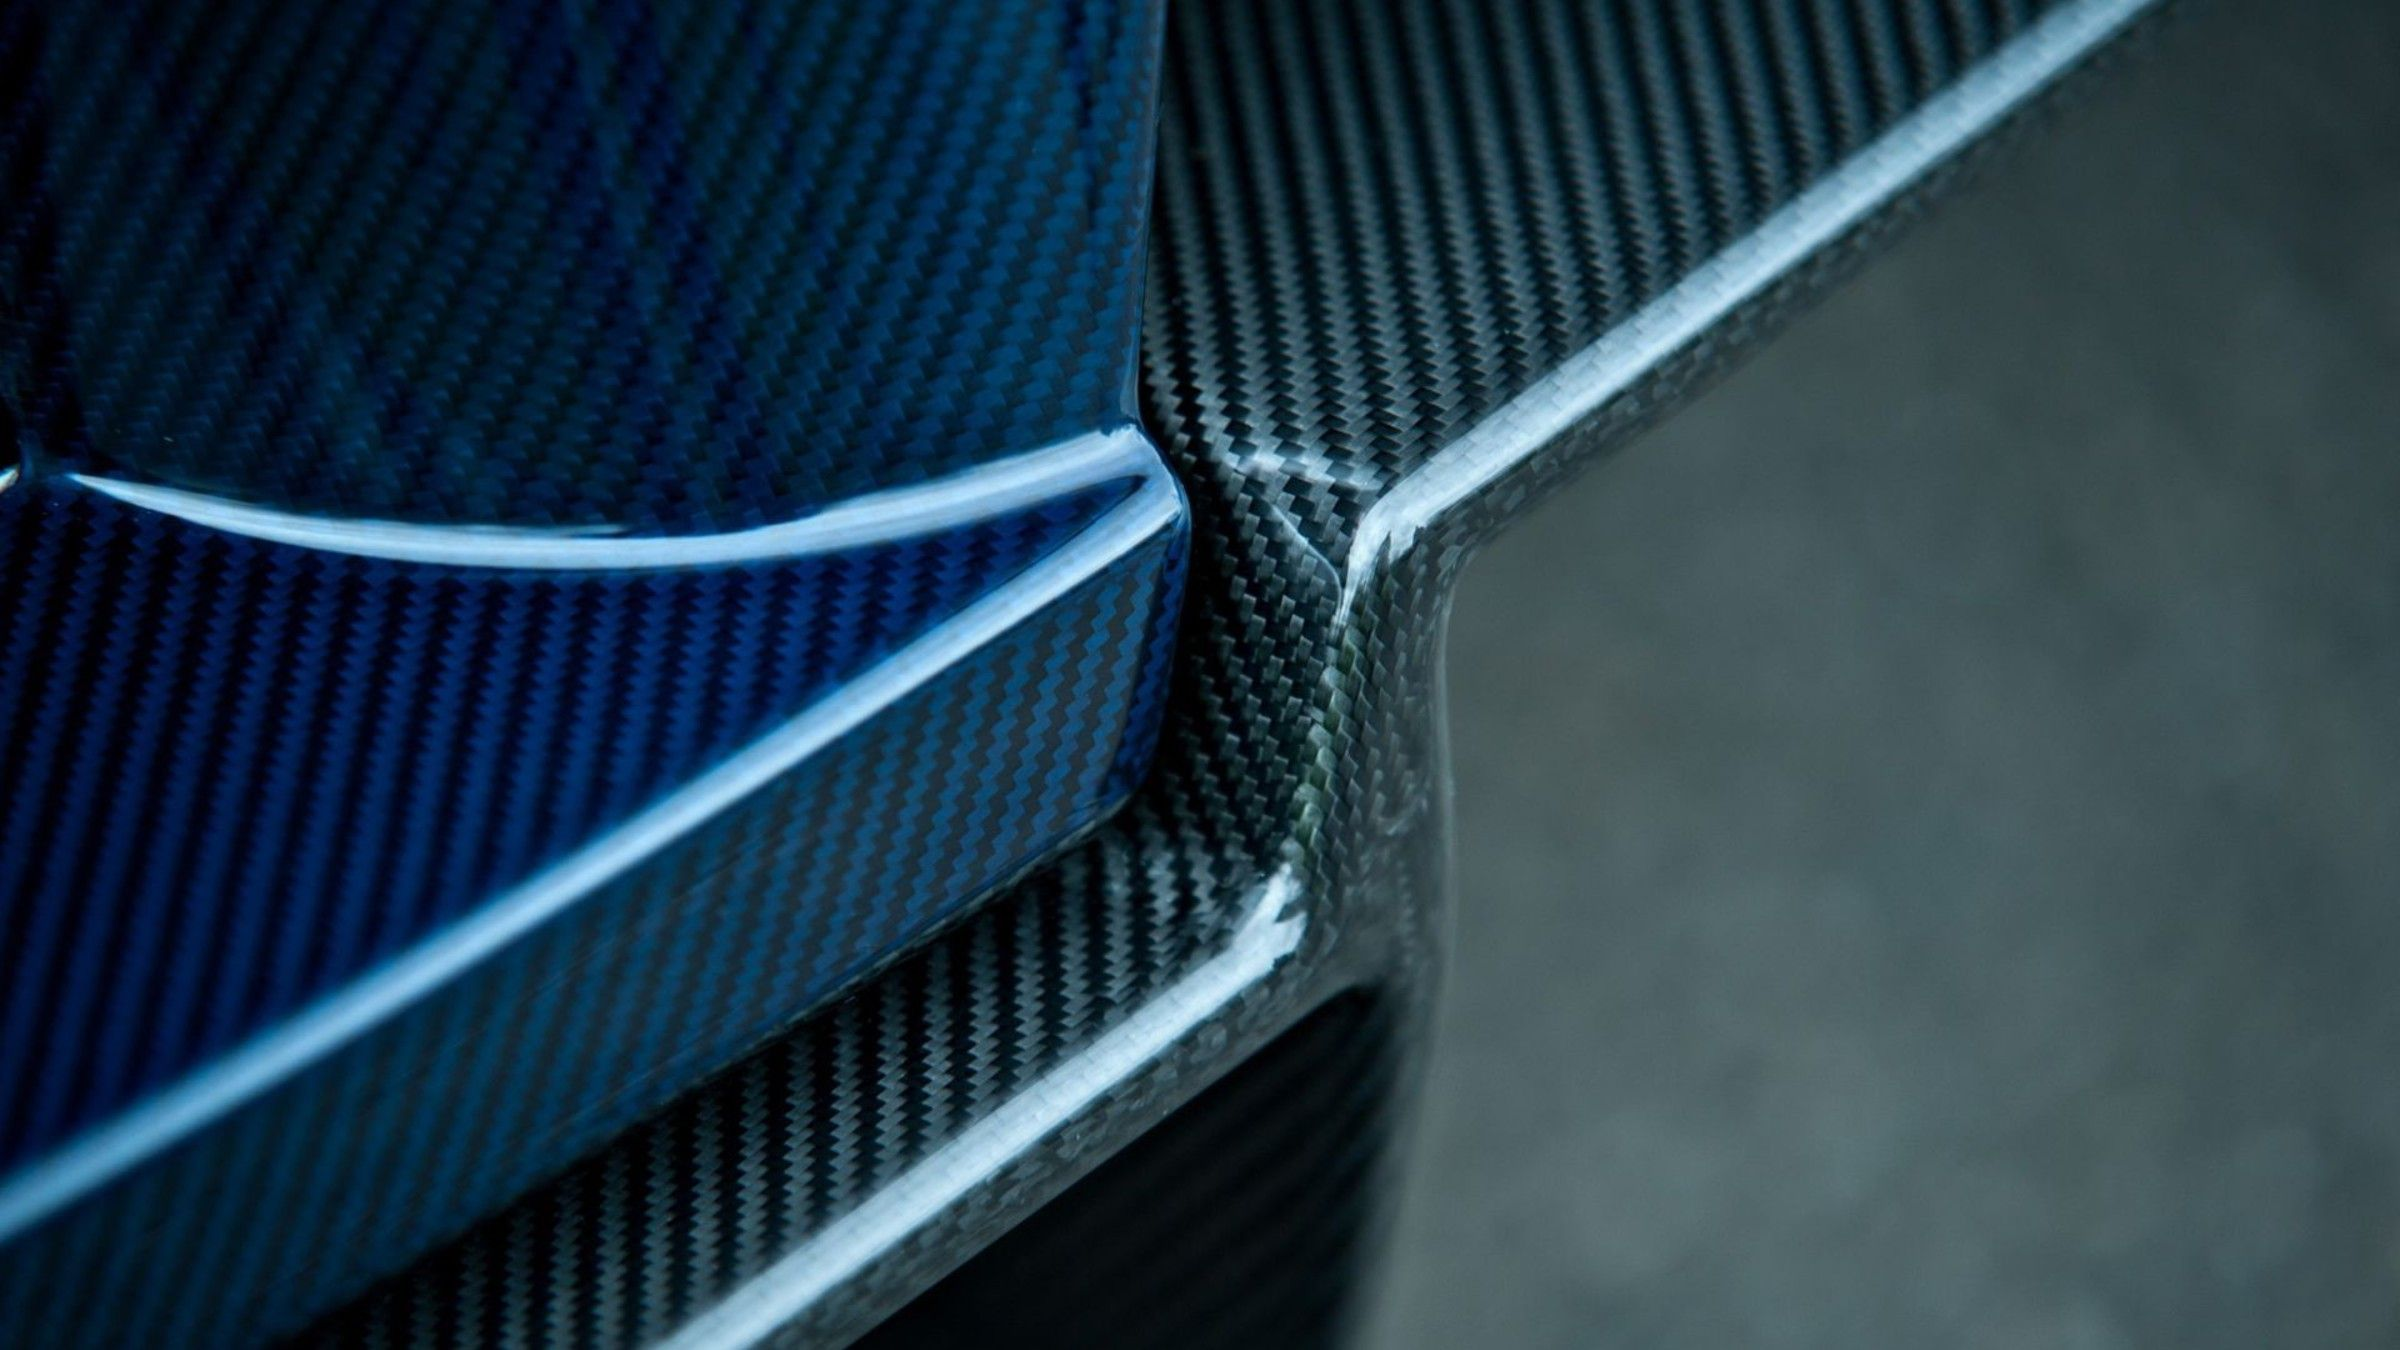 2400x1350 Zonda audi subaru artwork supercars carbon fiber wallpaper ...